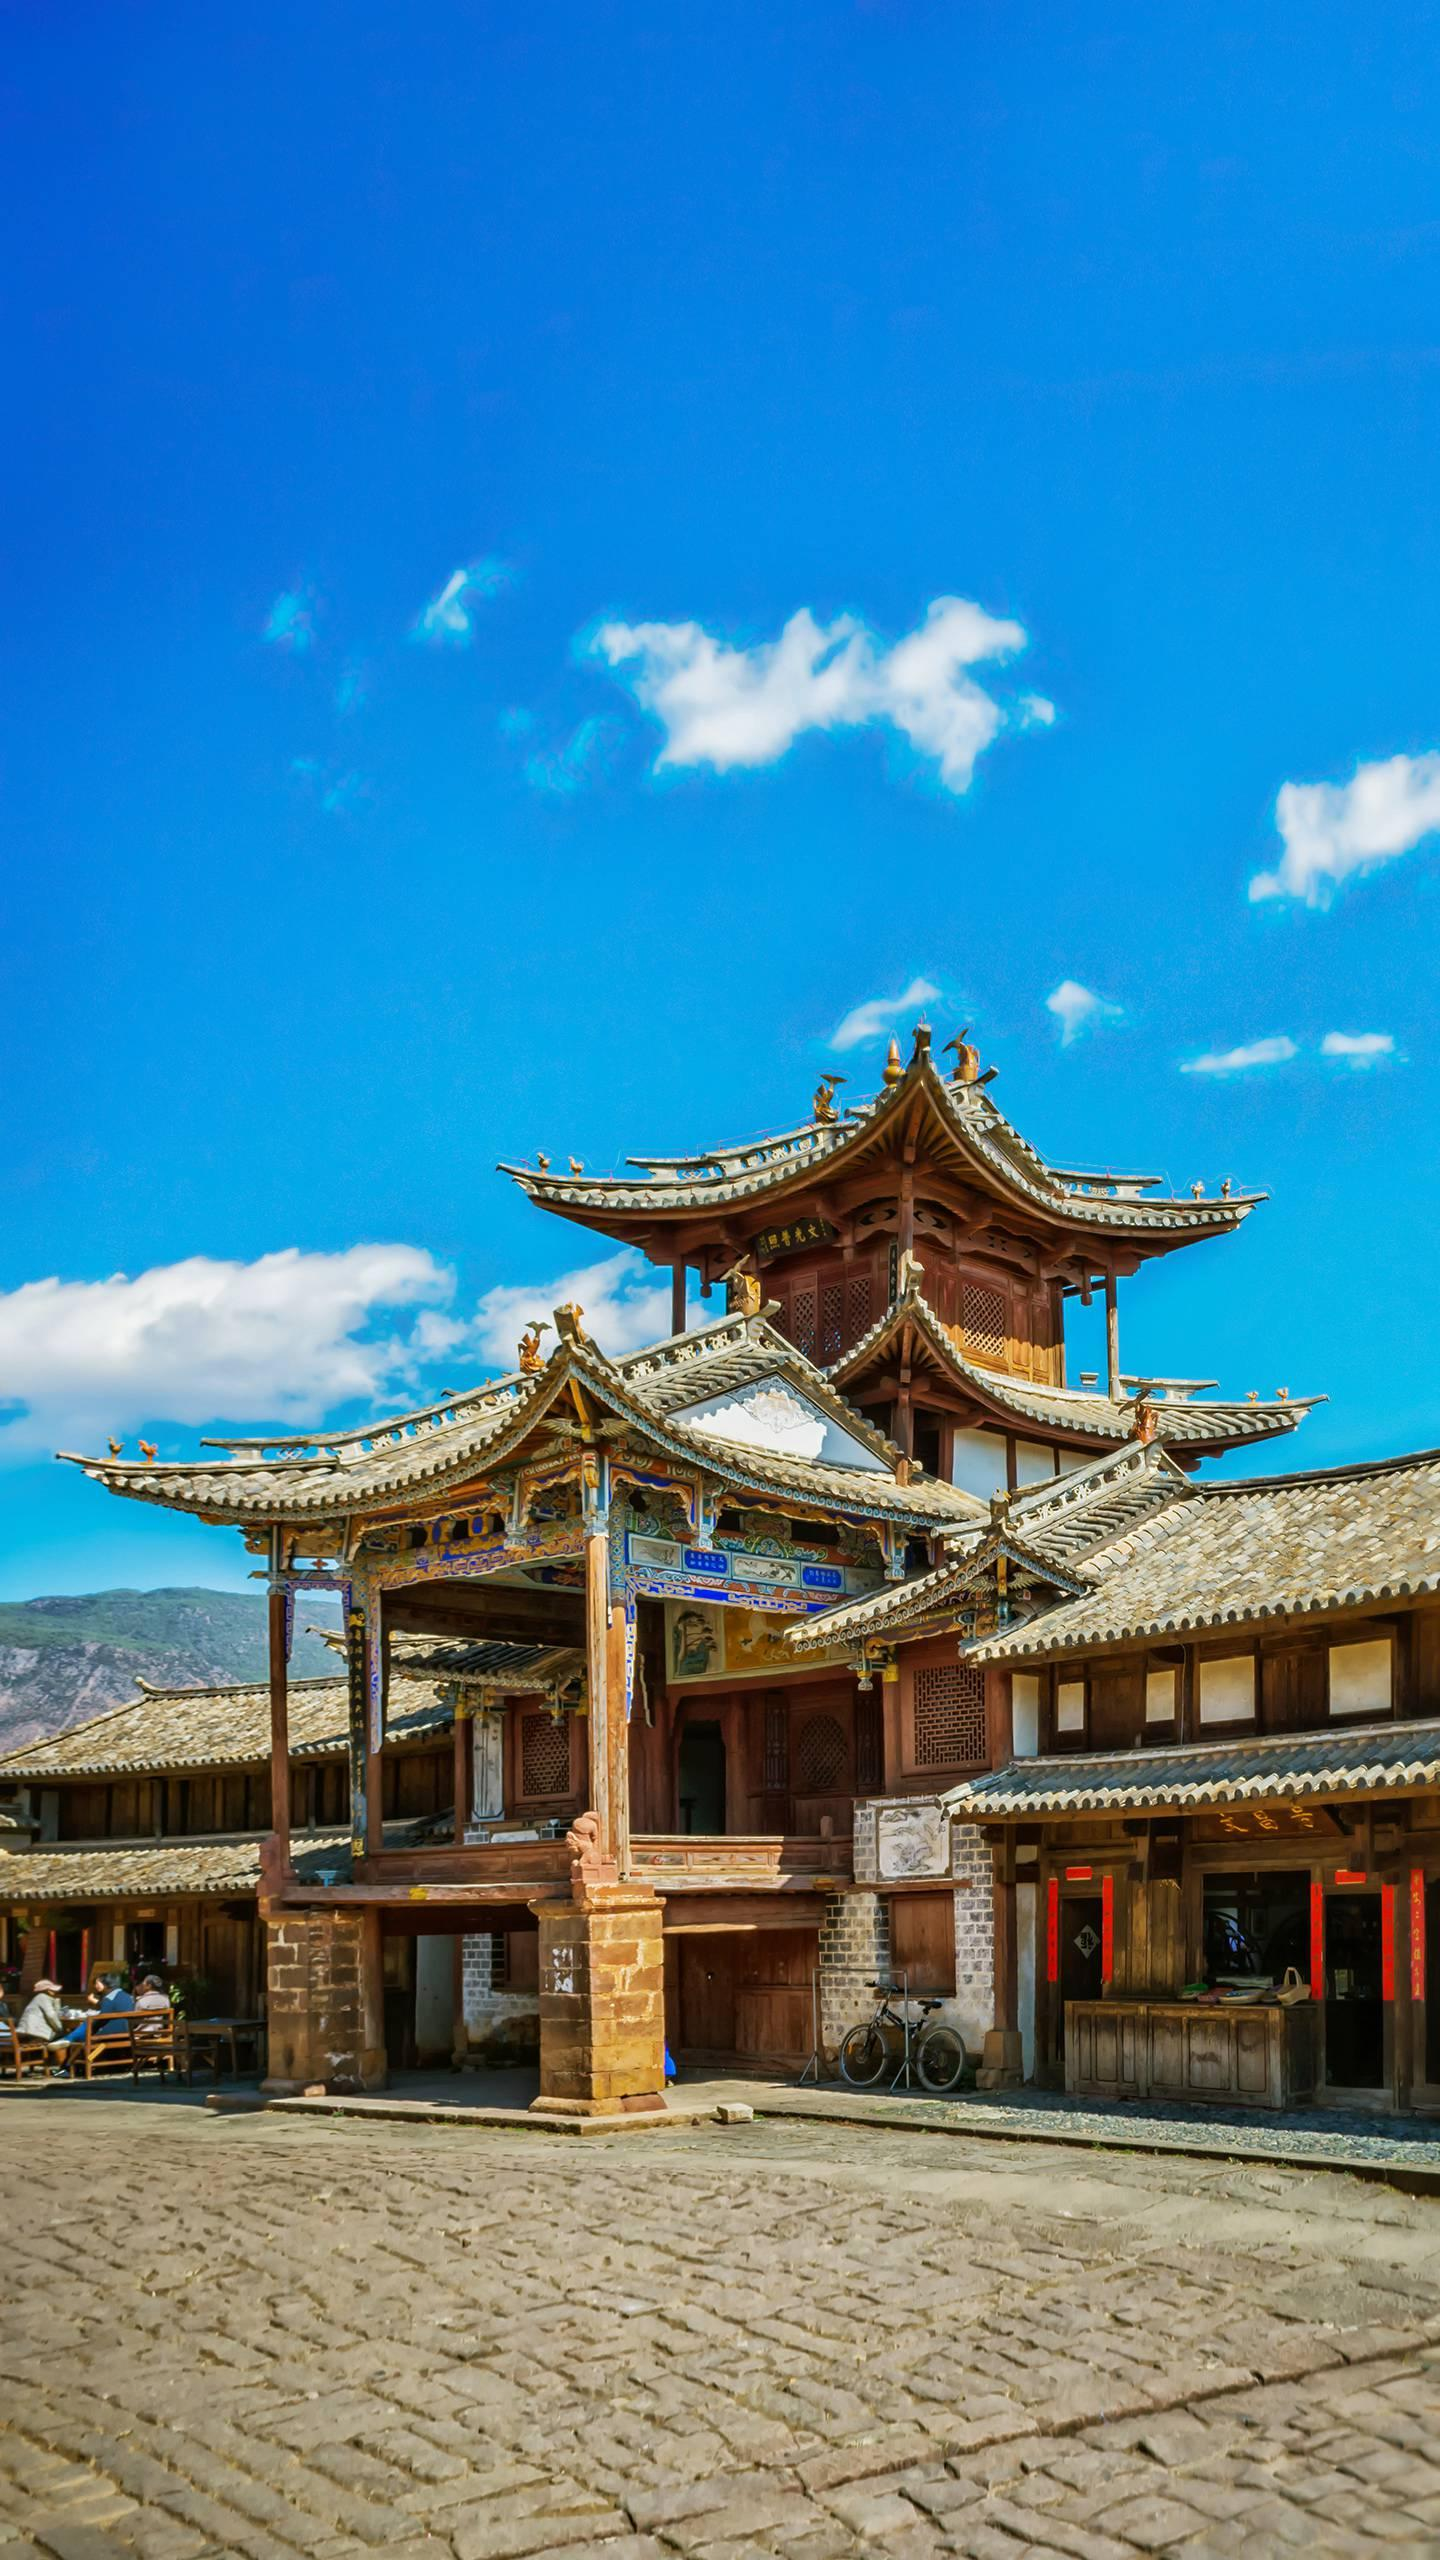 Yunnan - Shaxi Ancient Town. It was an important station on the ancient tea-horse road. It is antique and still retains its ancient architectural features.